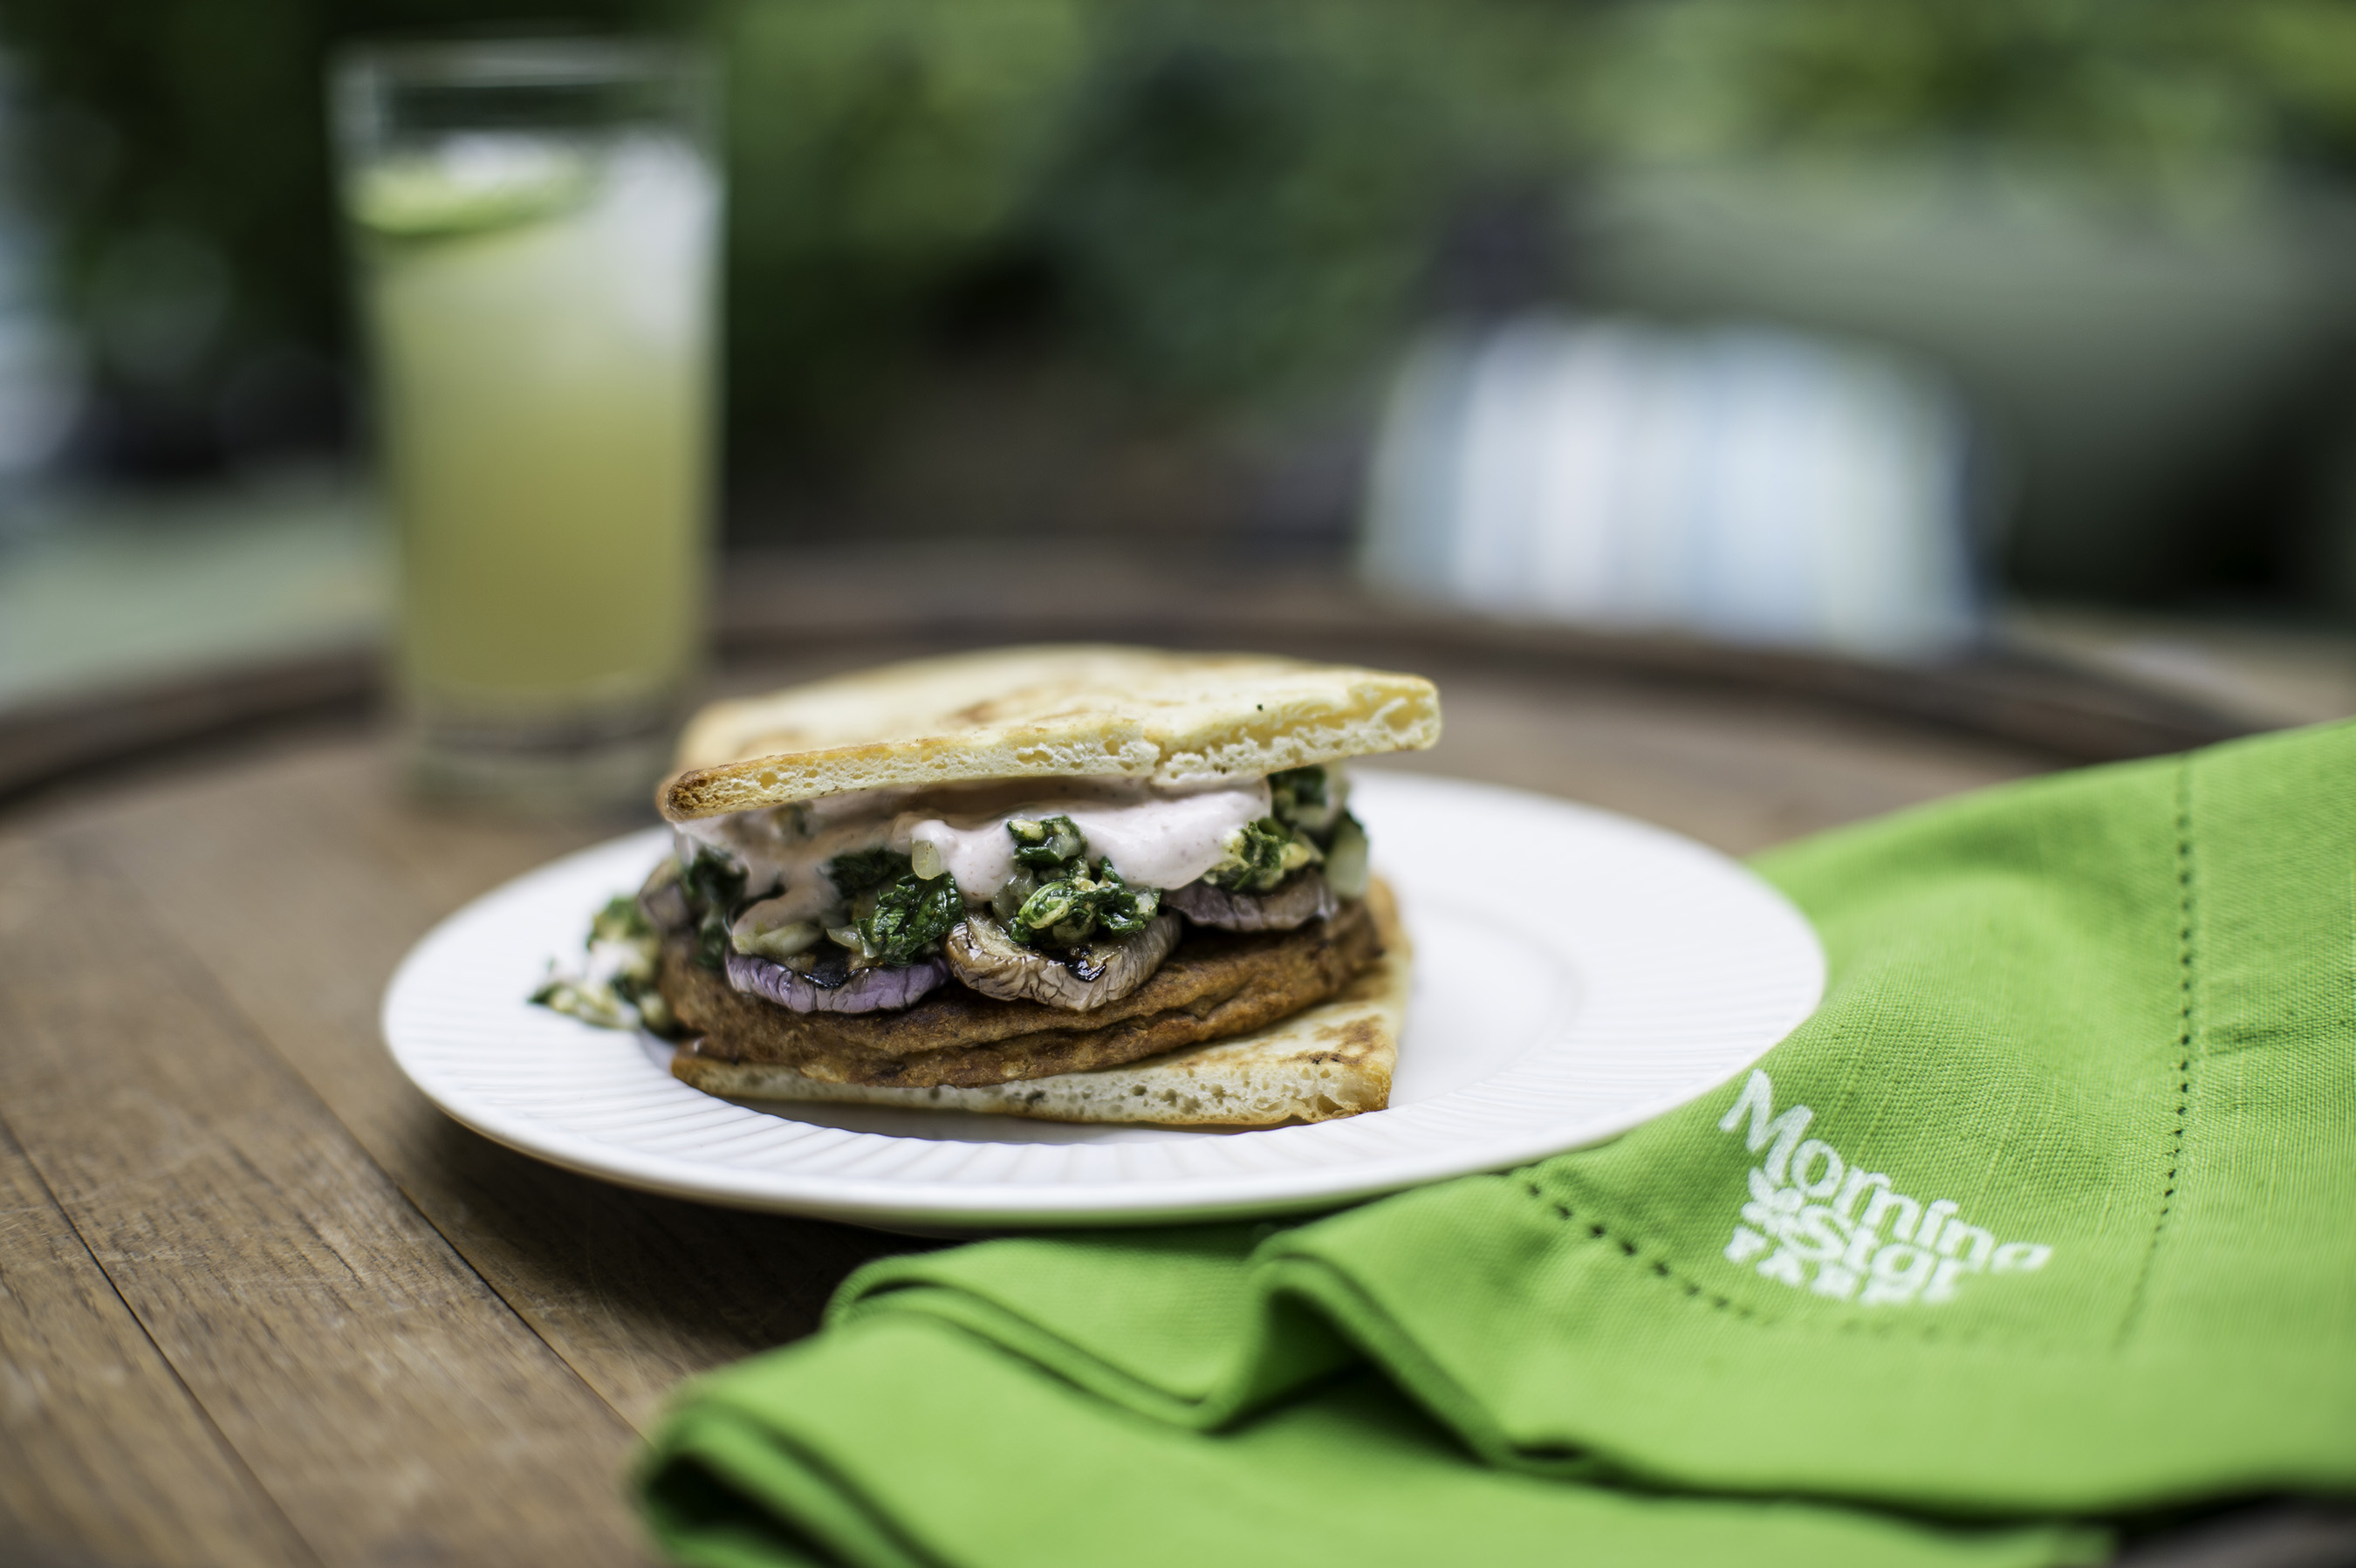 MorningStar Farms® Grillers® Original Burger topped with yogurt mixed with tandoori spices, spinach infused with garam masala and eggplant, served on garlic naan bread